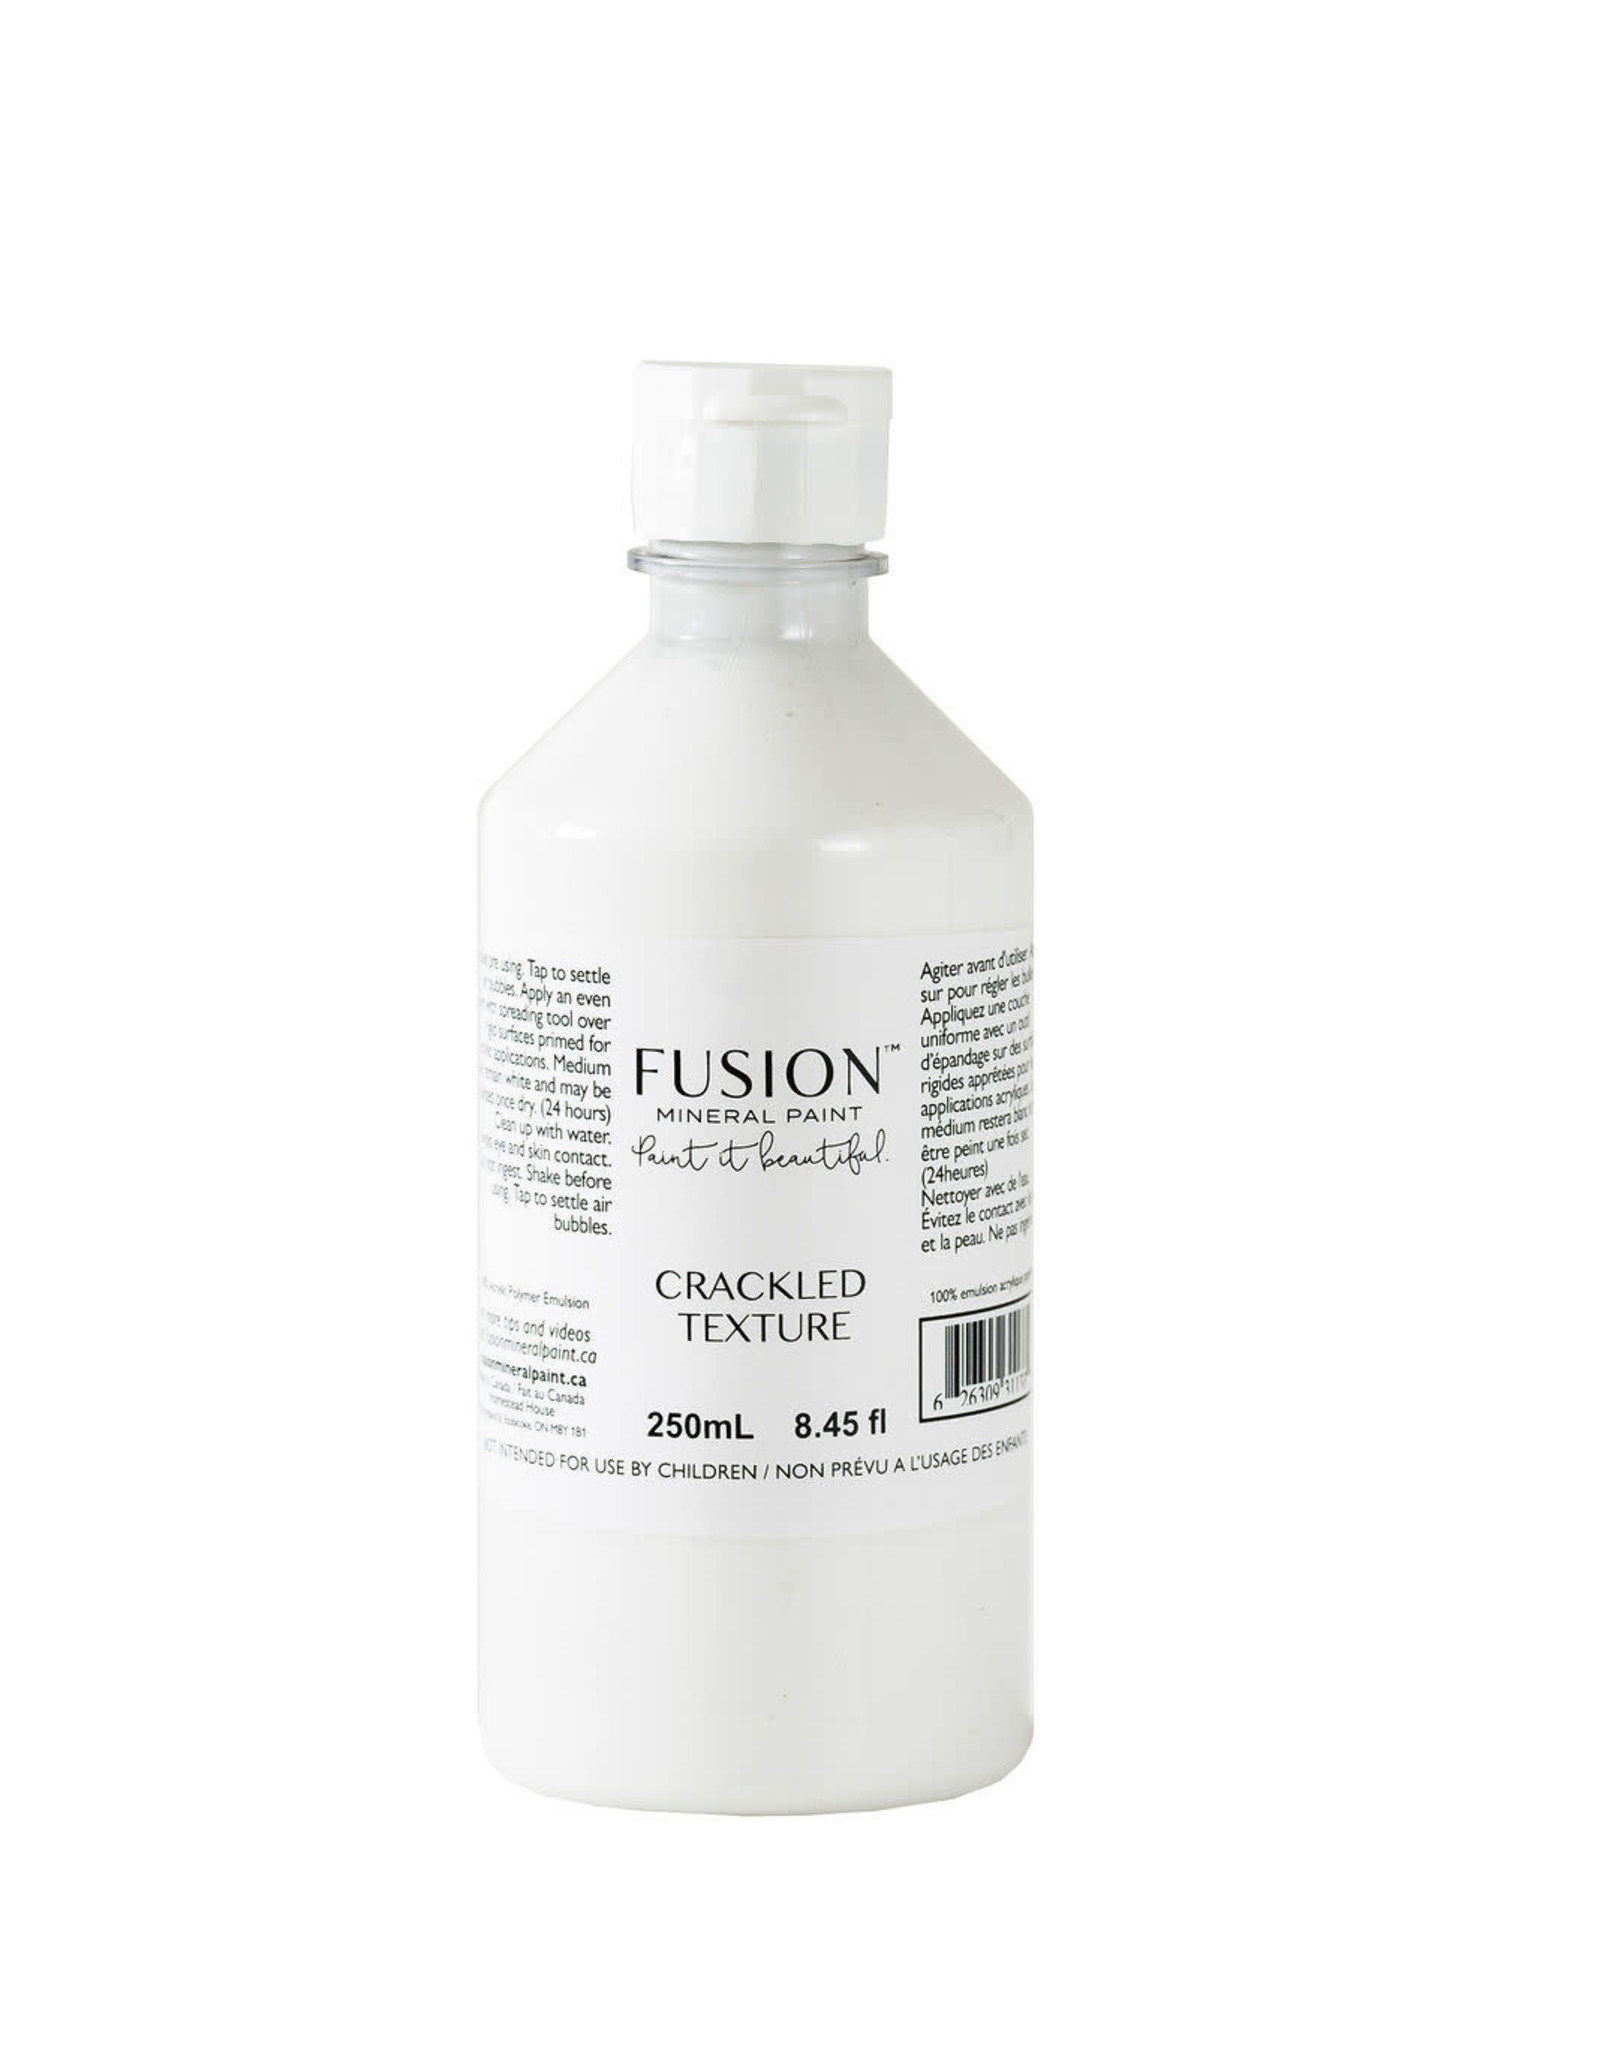 Fusion Mineral Paint Crackled Texture 250ml